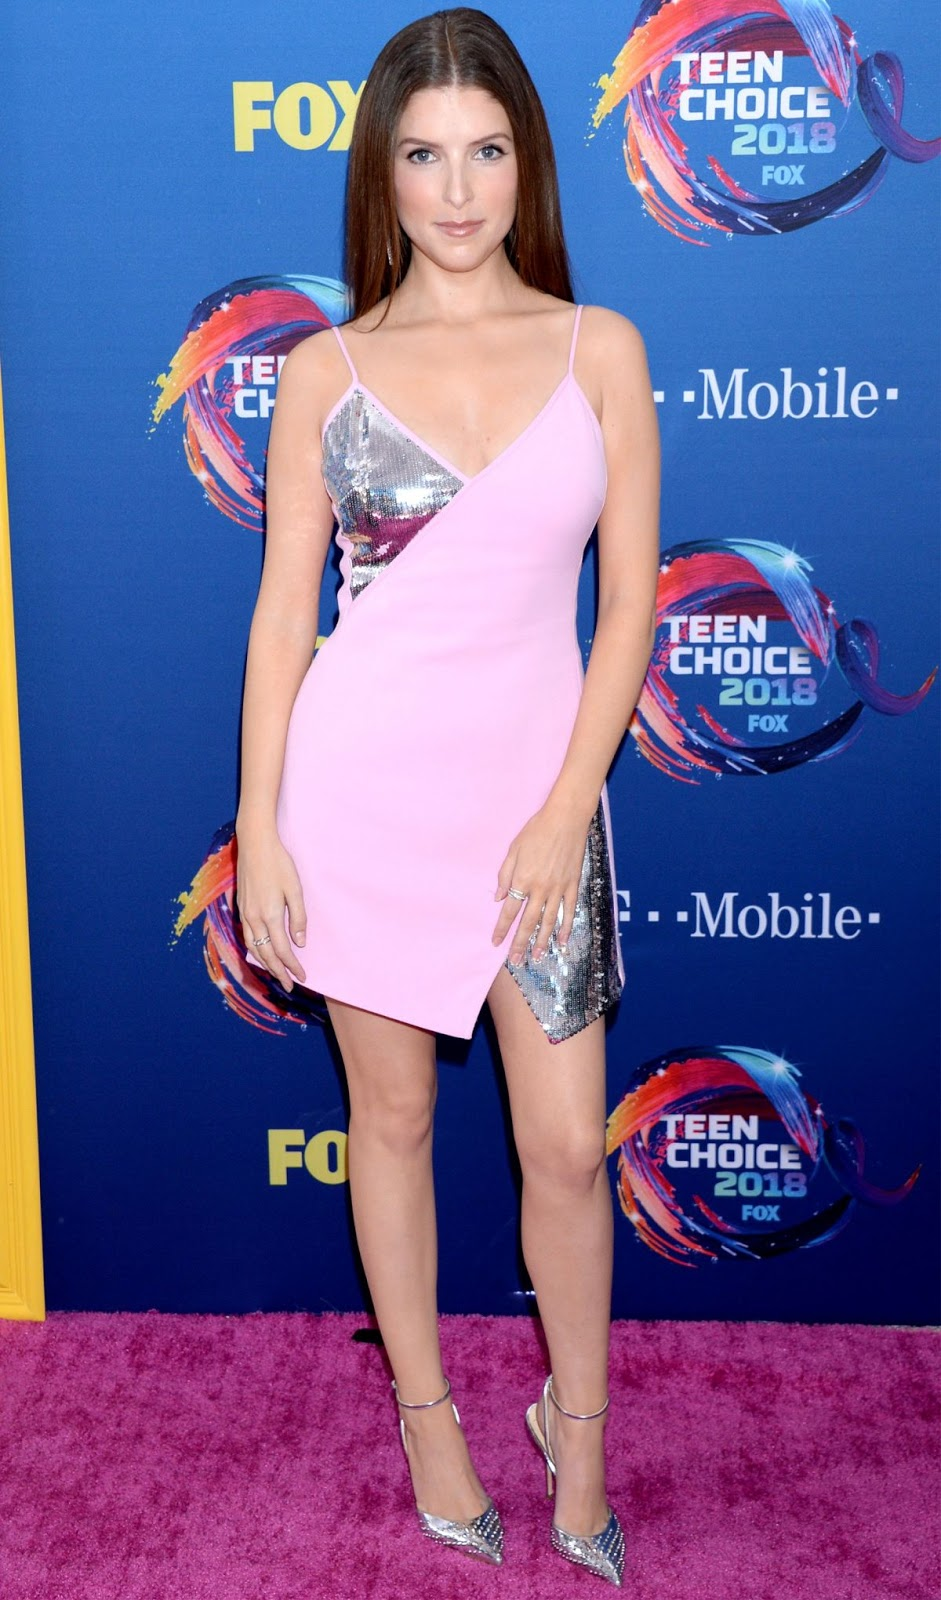 Anna Kendrick stuns in mini dress at the 2018 Teen Choice Awards